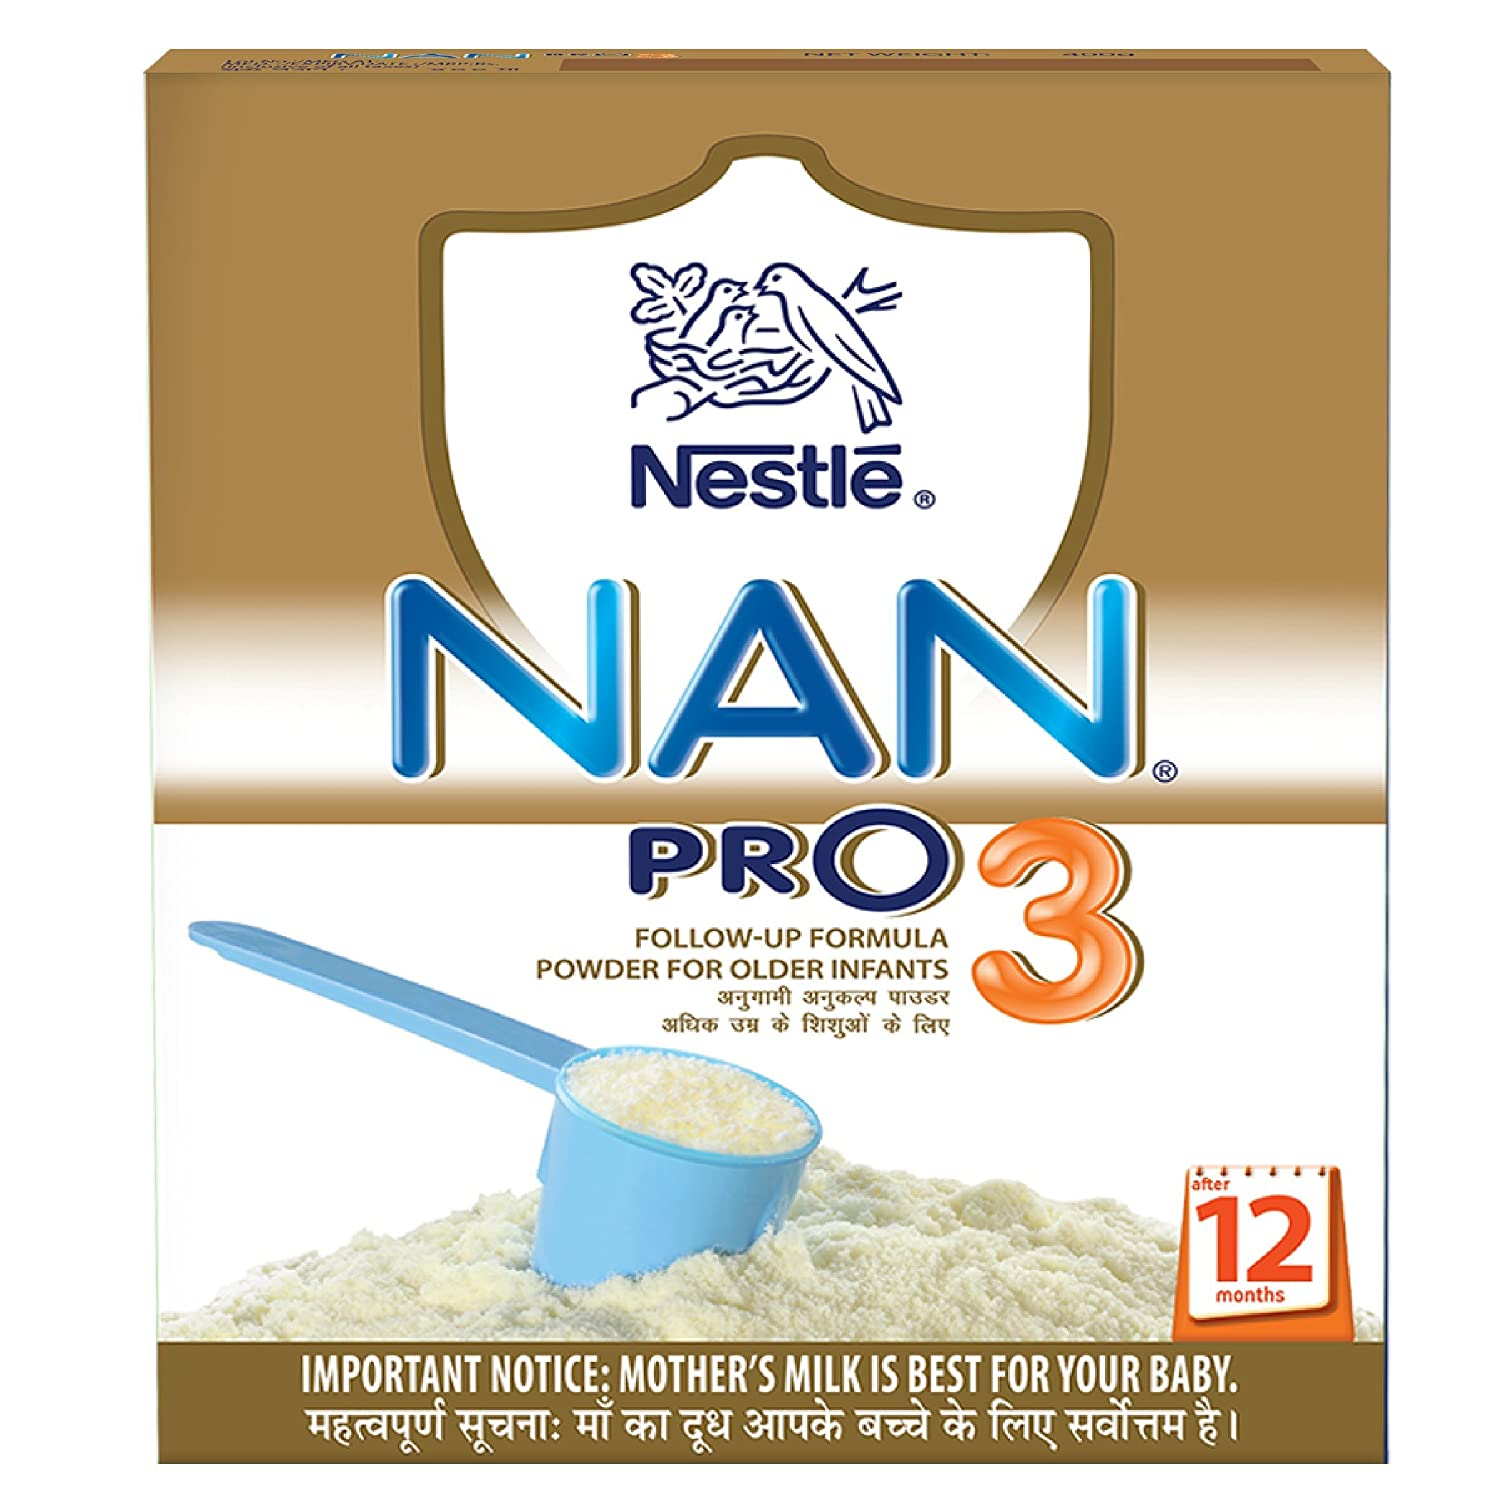 Dry milk formula Nestle NAN Triple comfort: reviews, composition 69